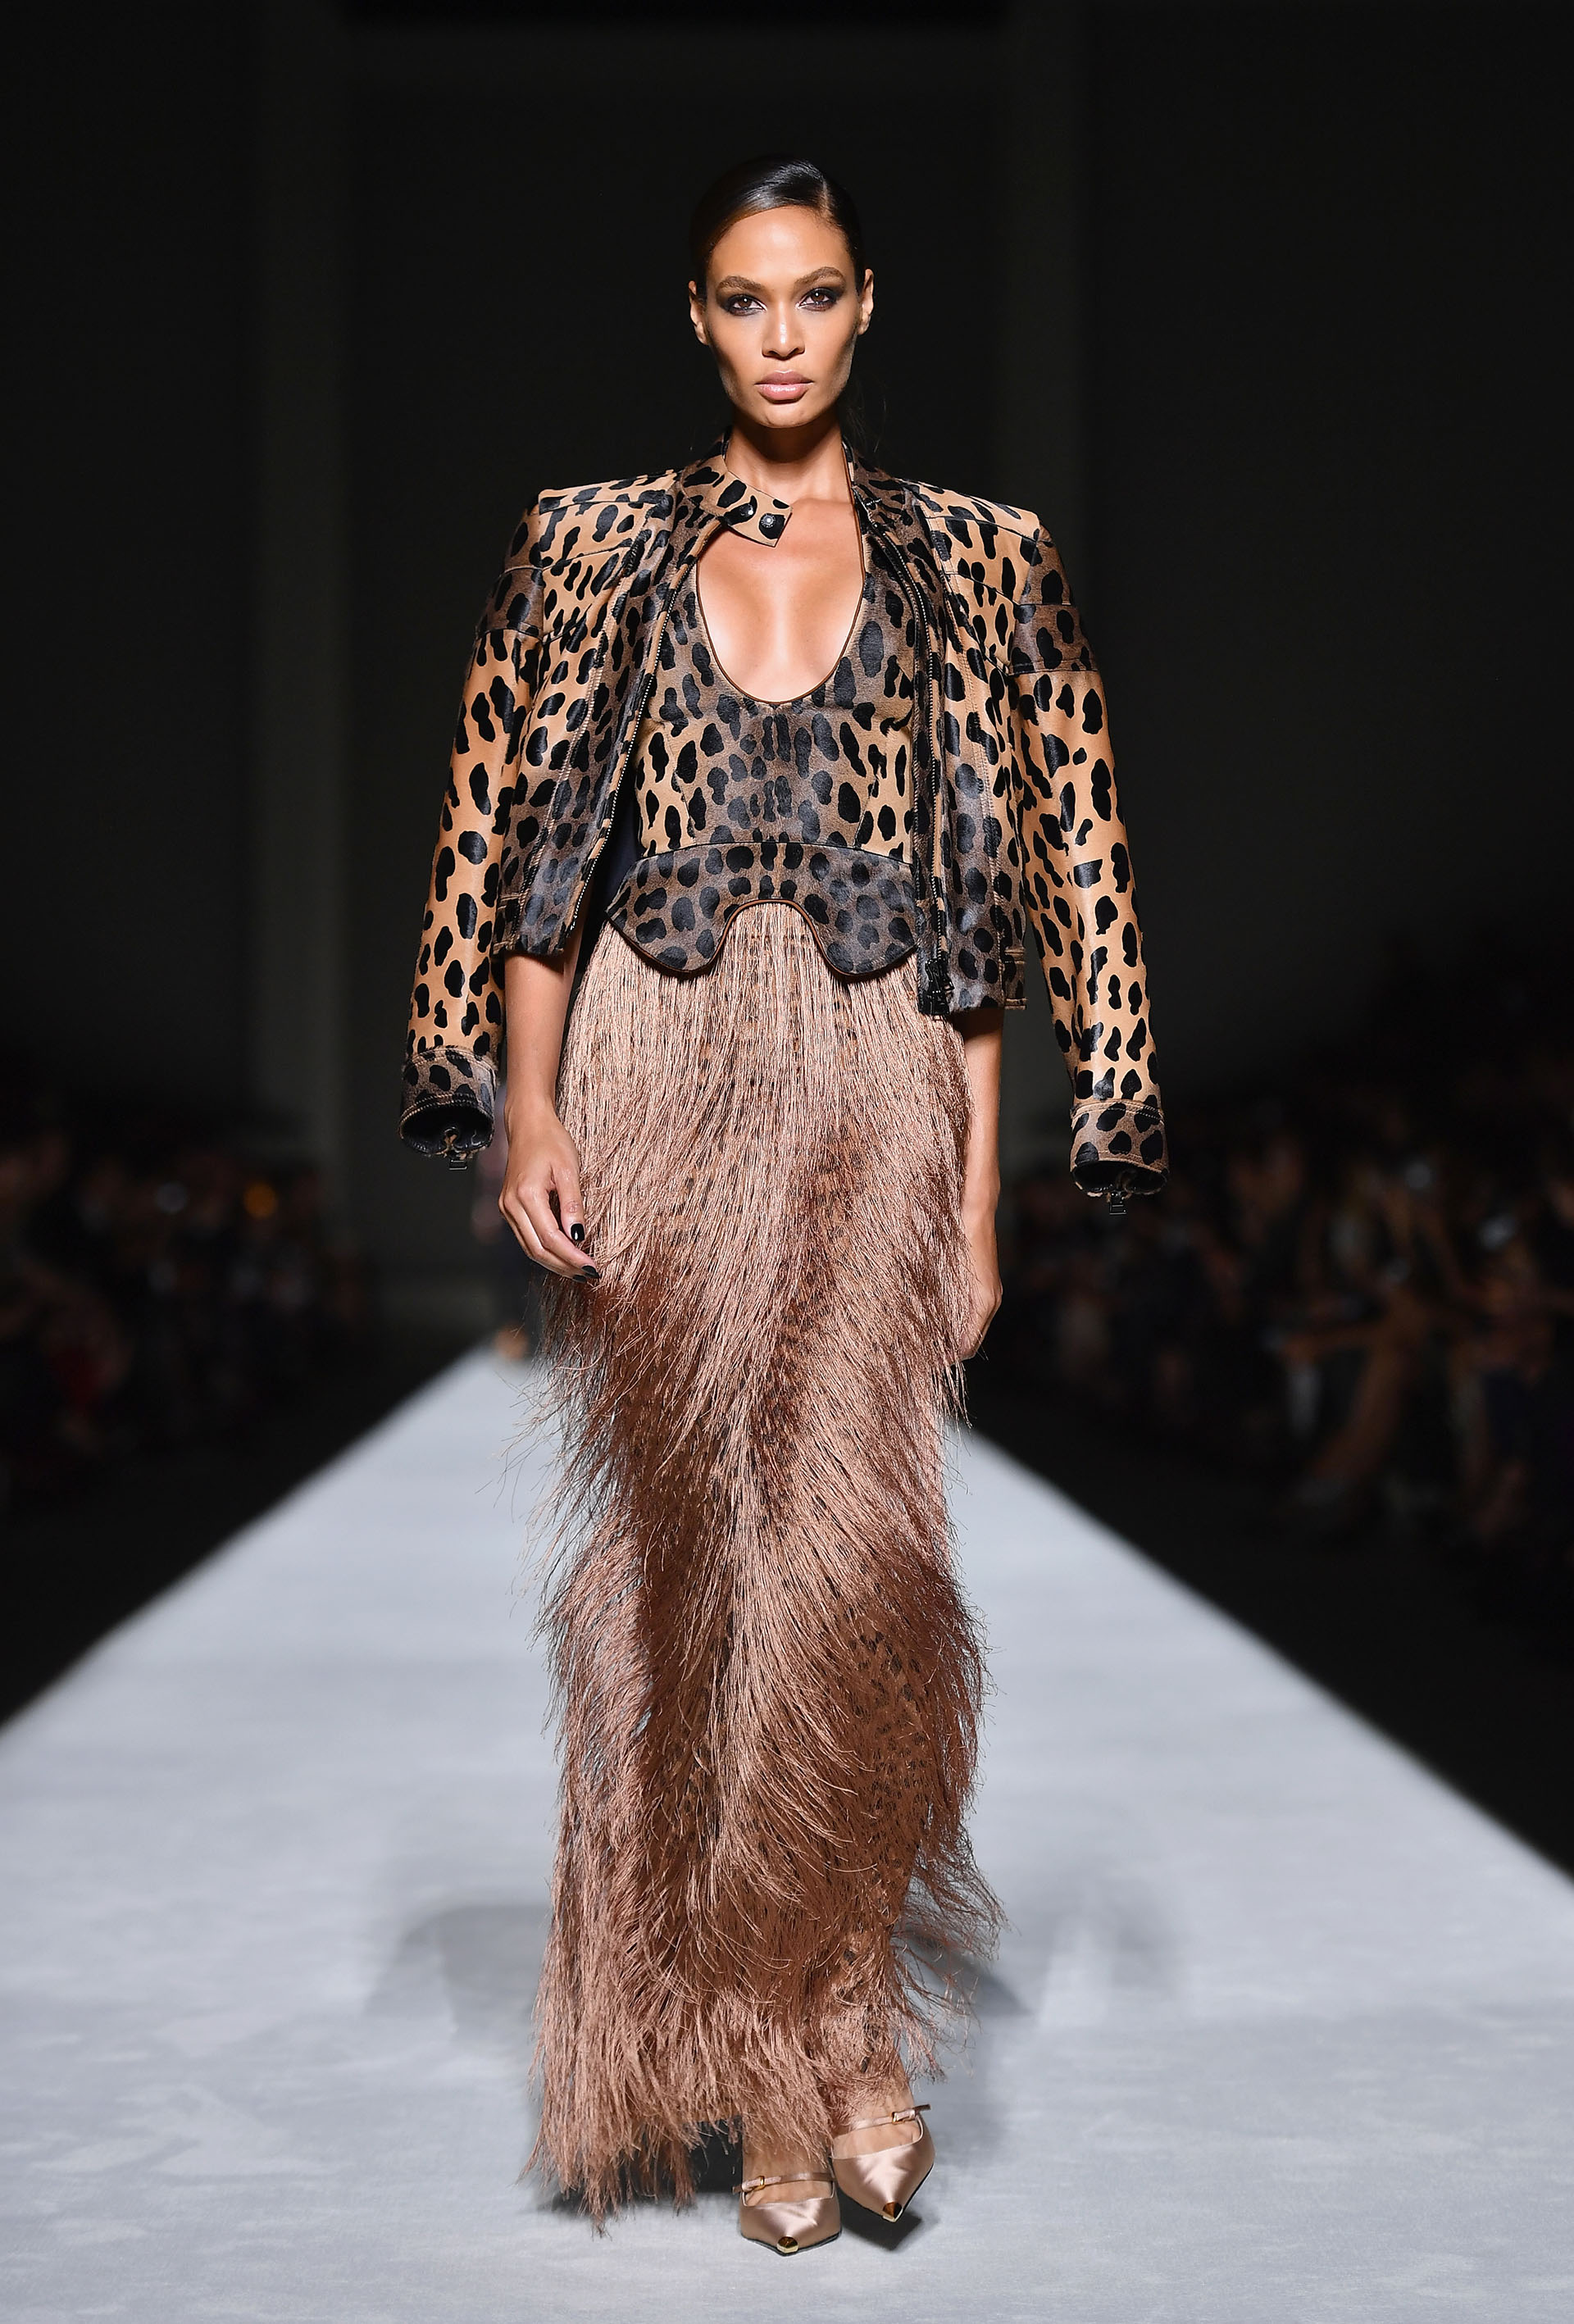 El animal print vuelve a la pasarela, se impone como tendencia (/ AFP PHOTO / Angela Weiss)